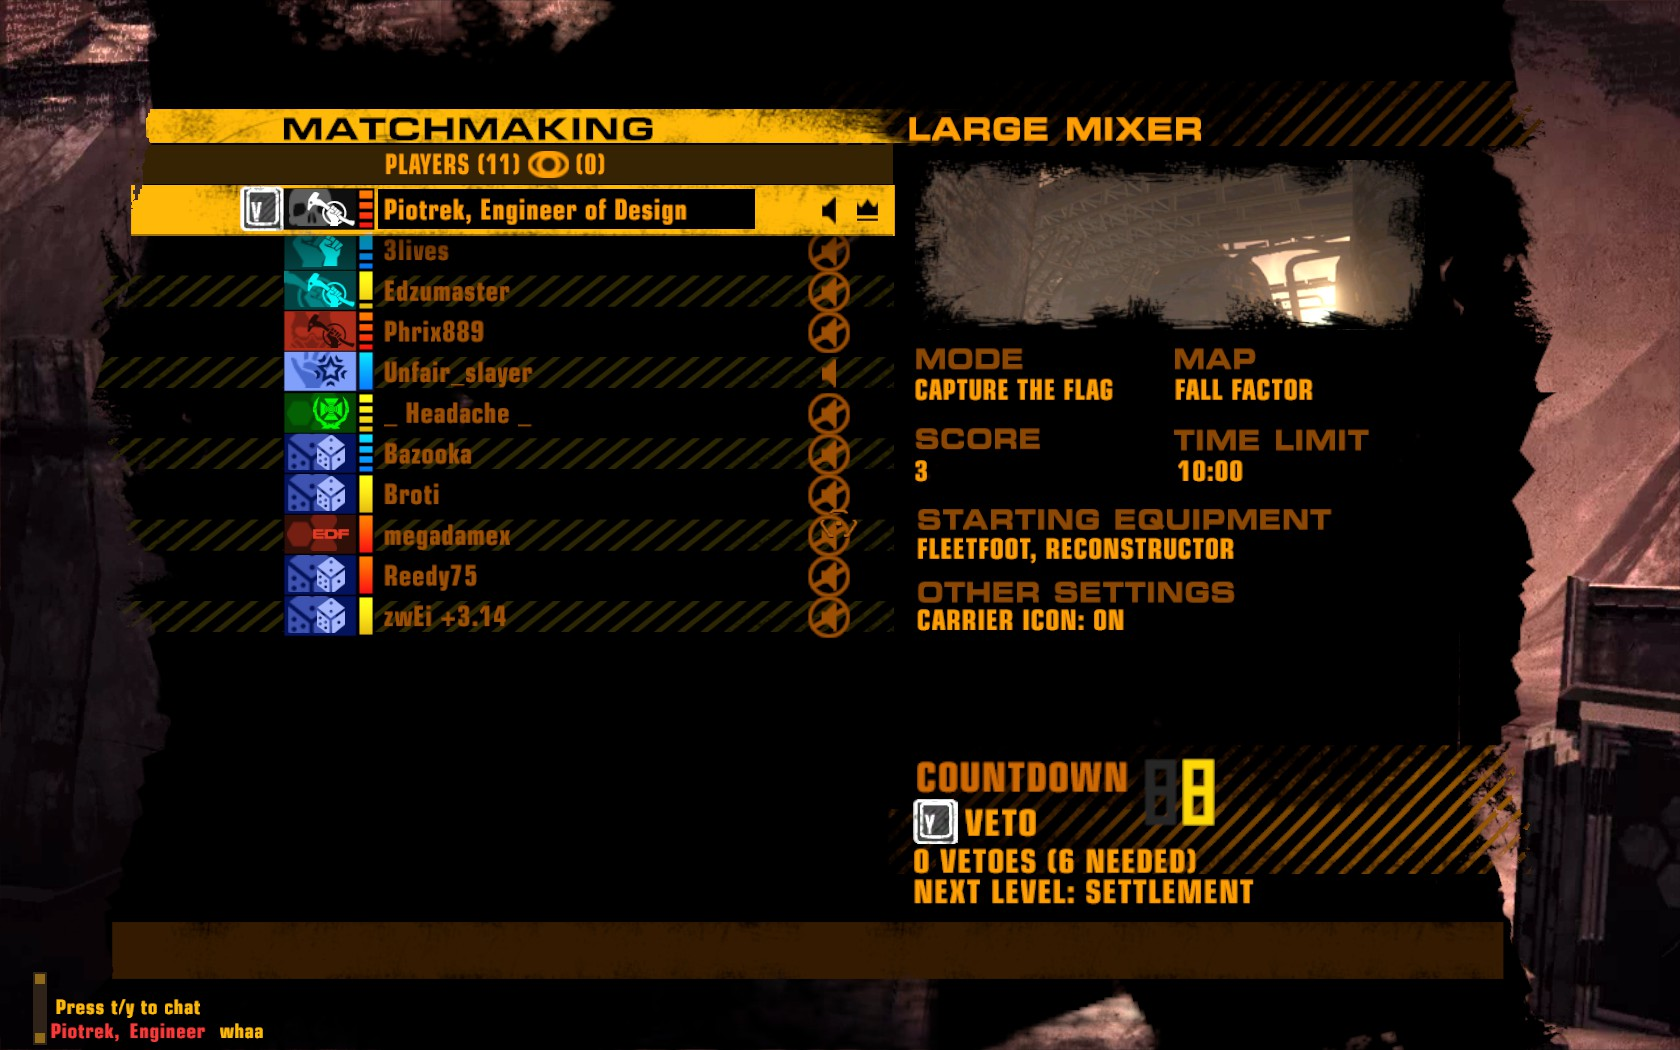 Red faction guerrilla matchmaking